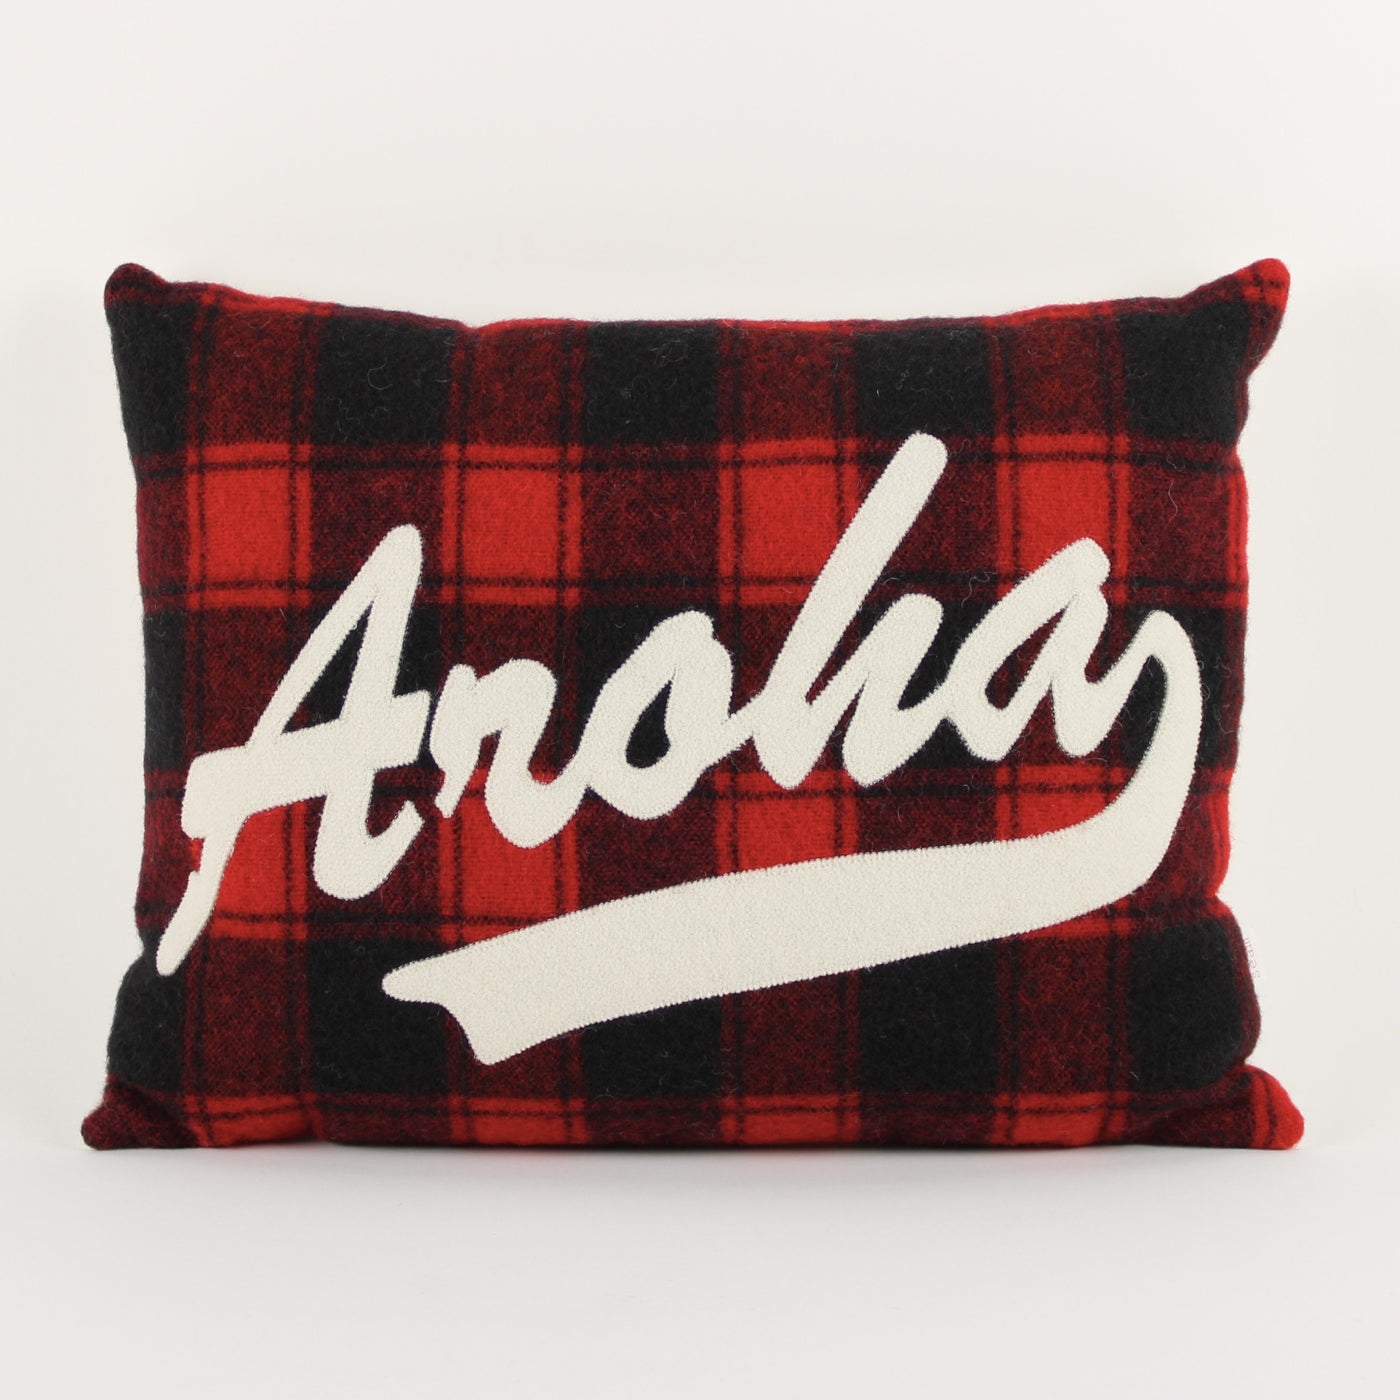 Aroha cushion - red check background